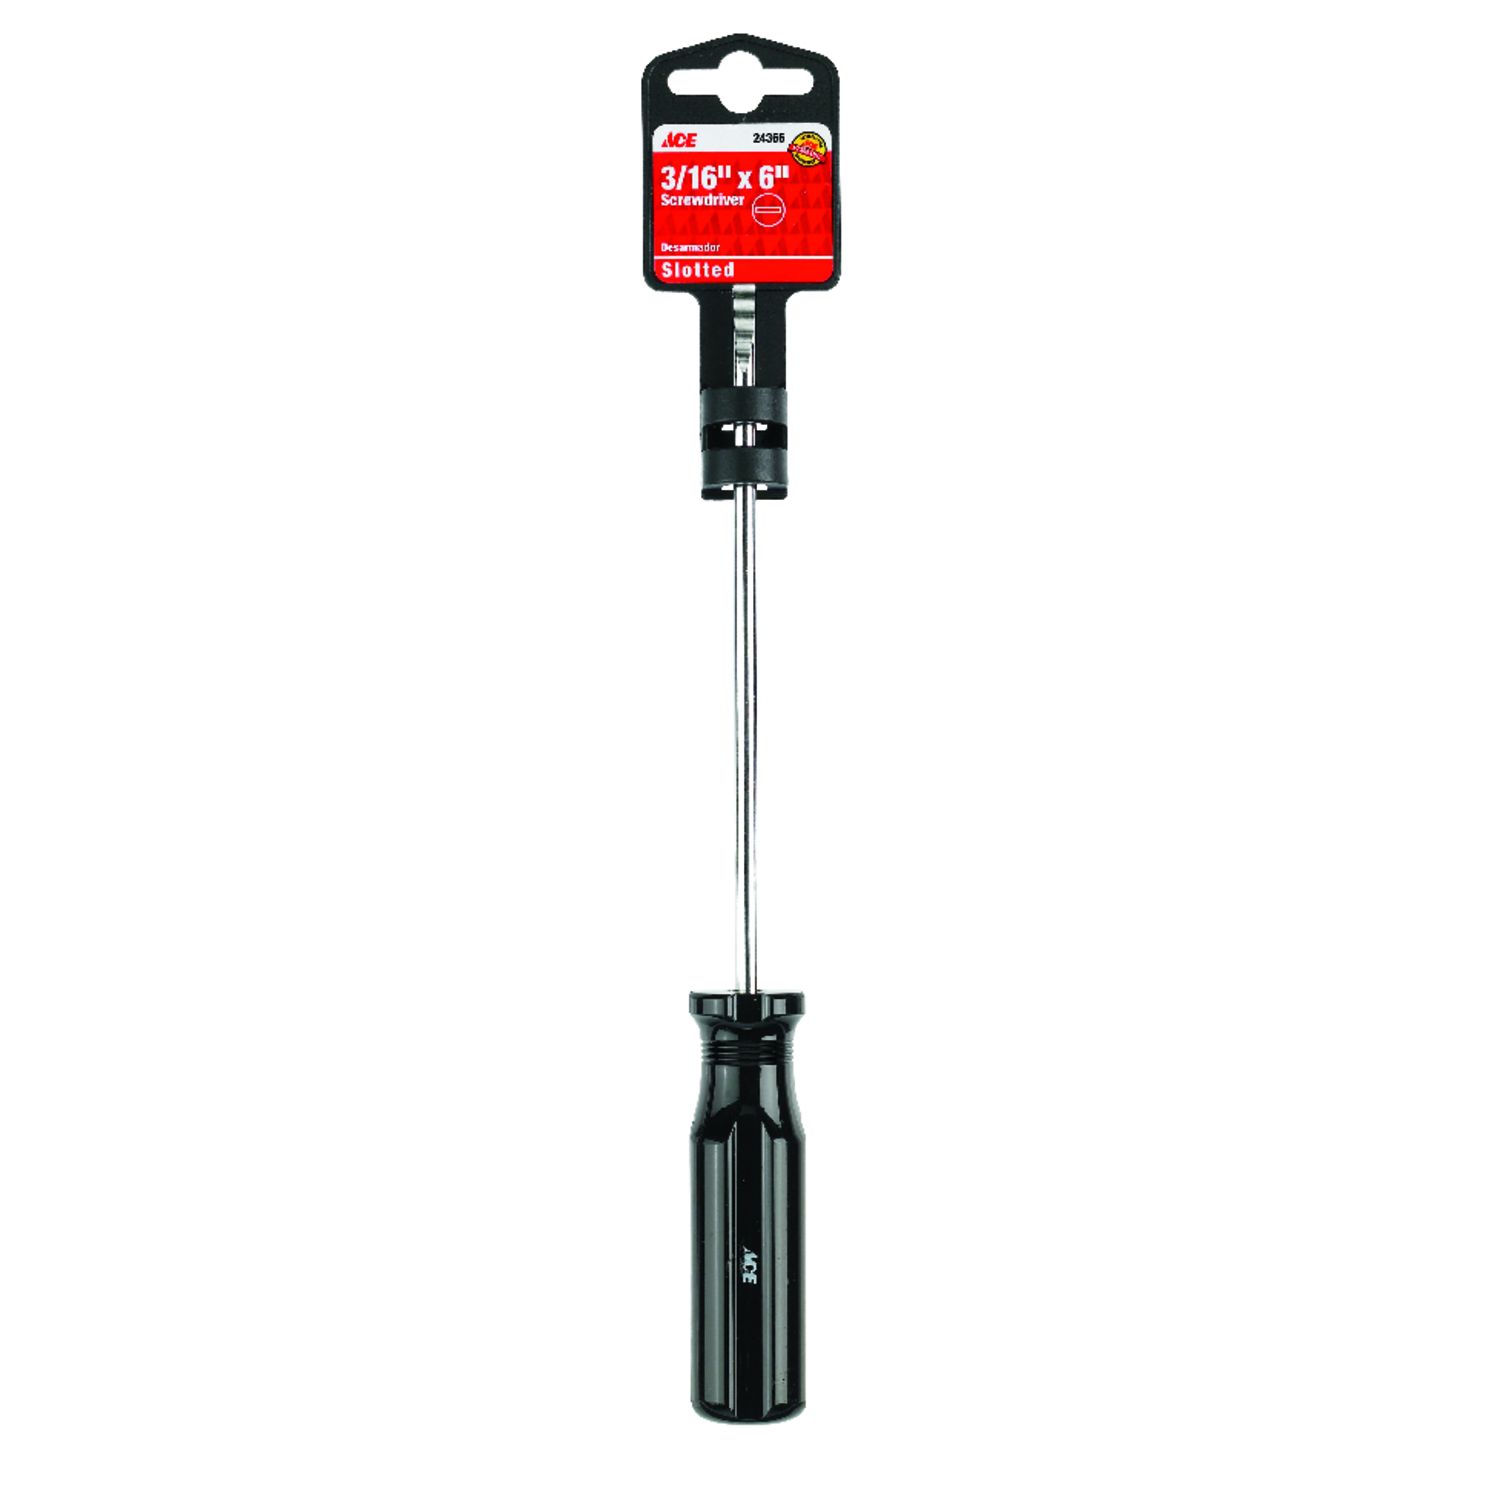 Ace  6 in. Slotted  3/16  Screwdriver  Steel  Black  1